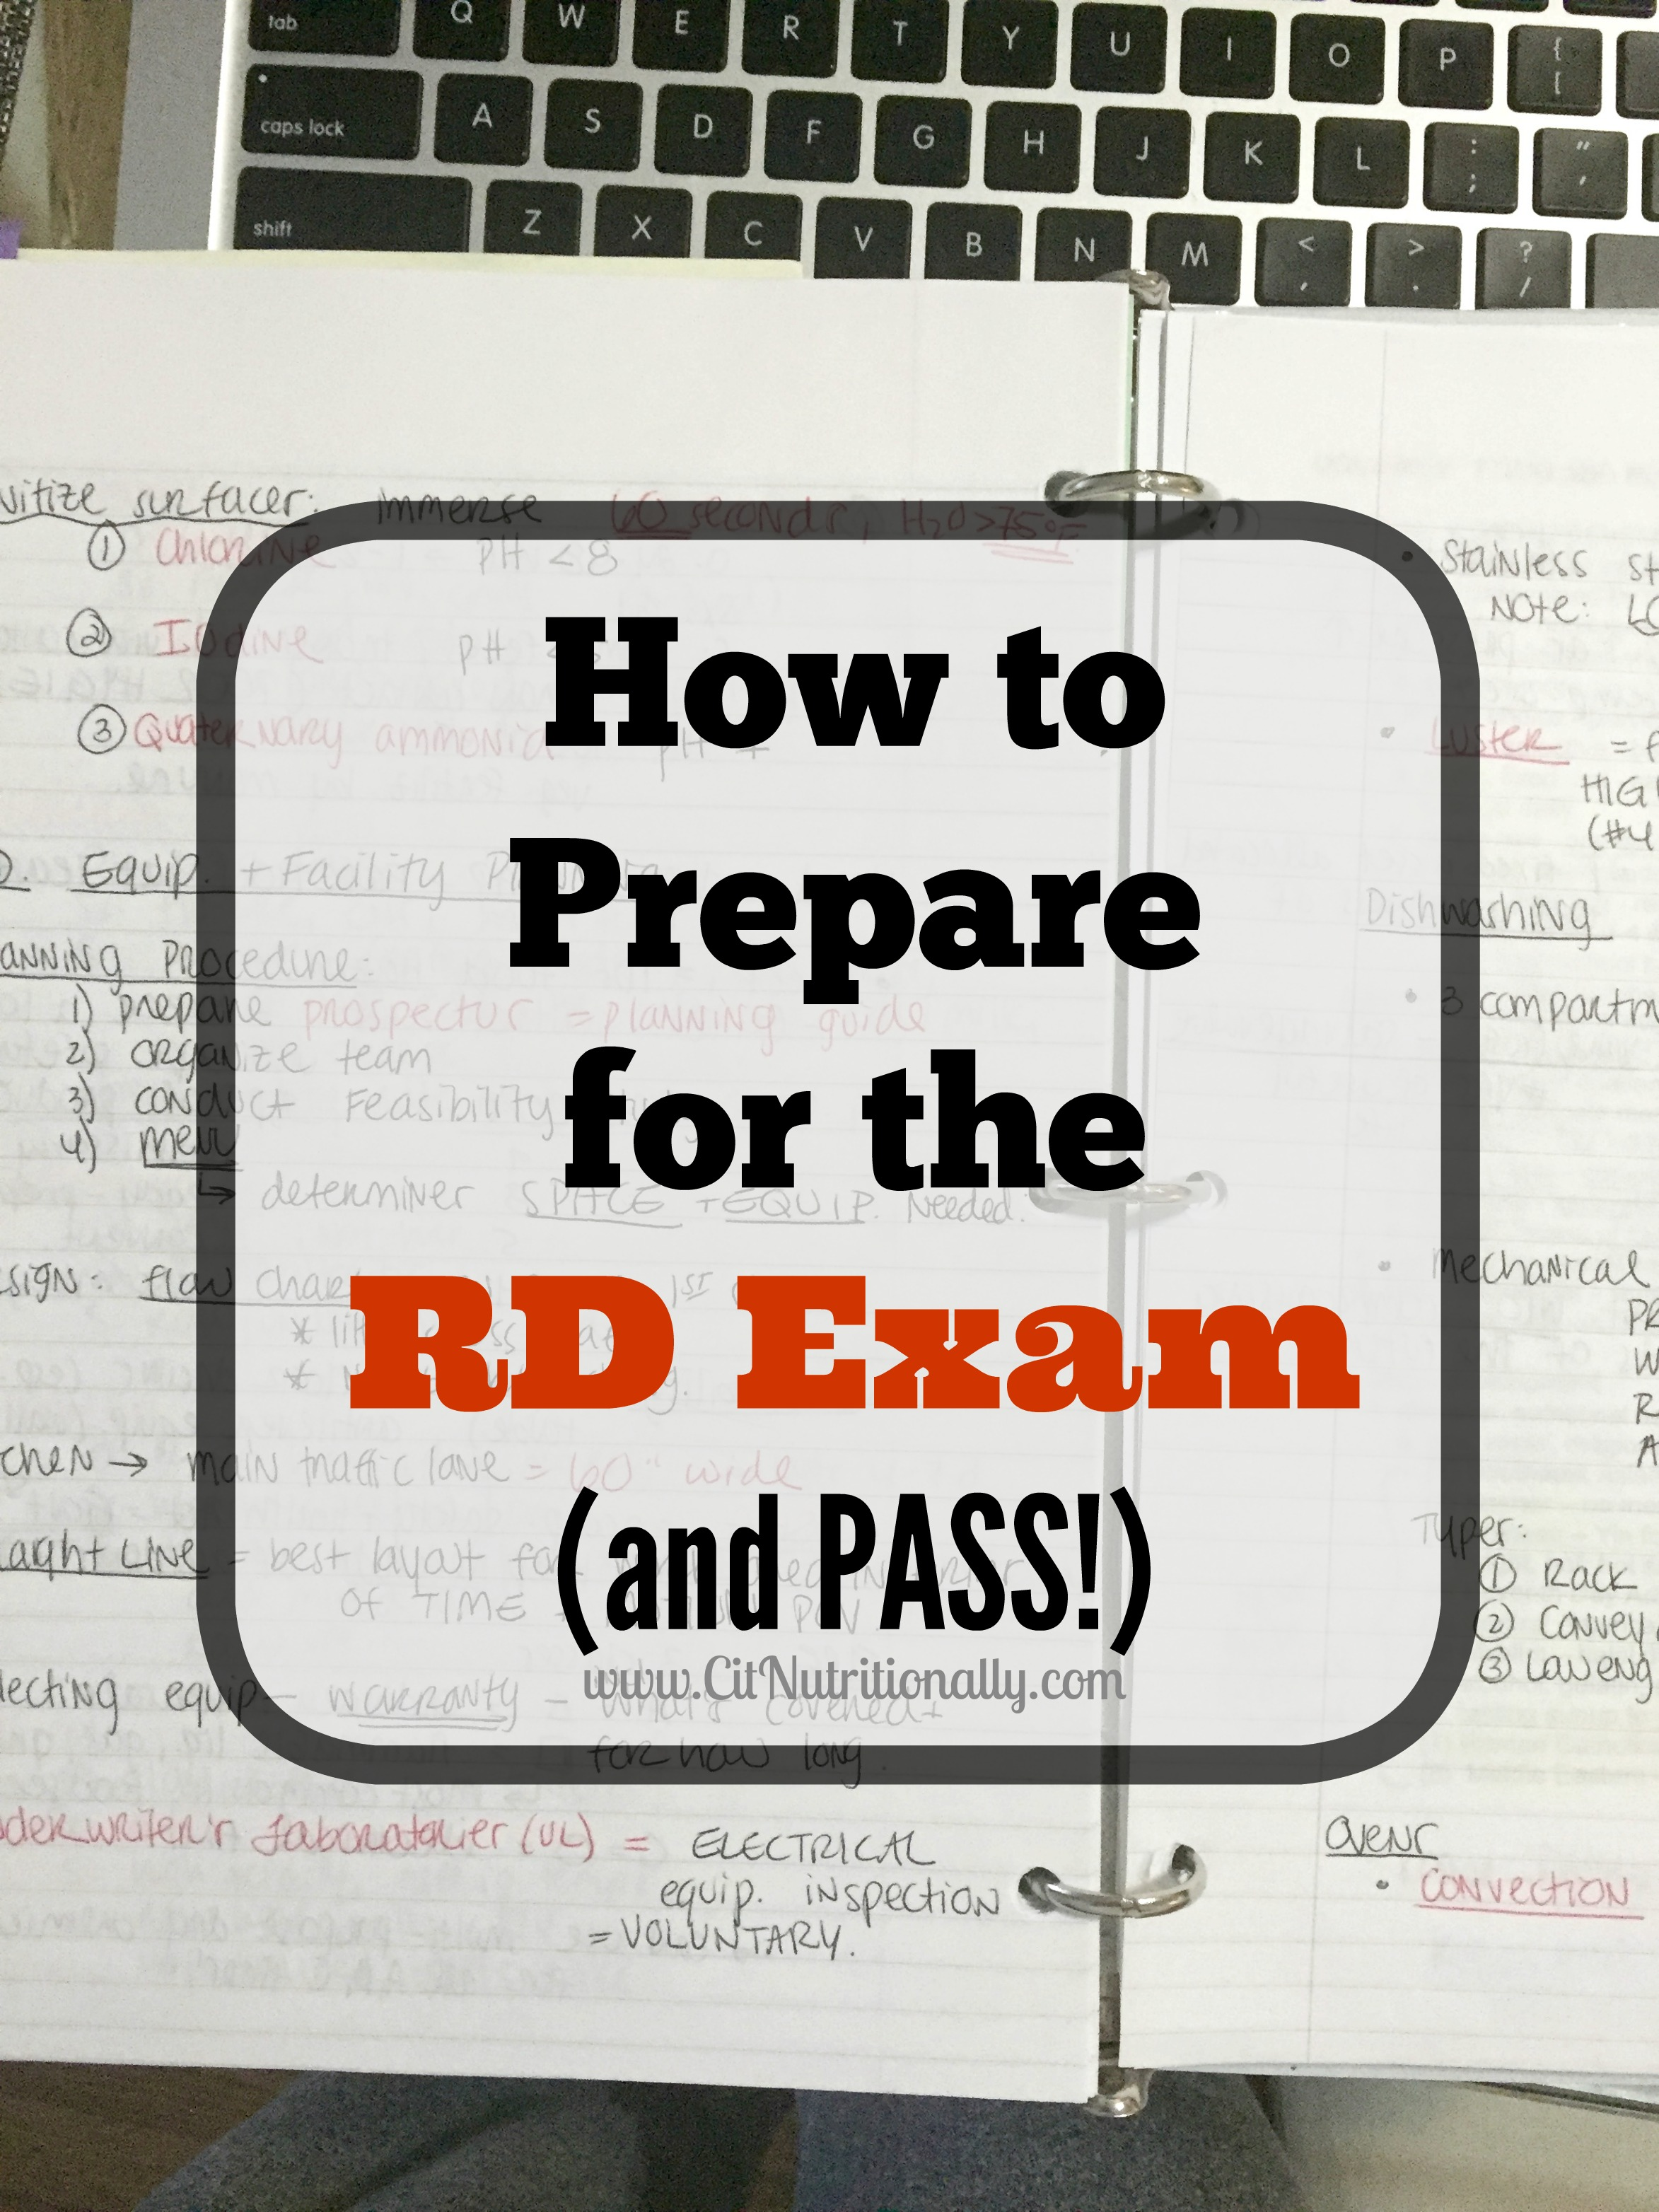 How to Prepare for the RD Exam | C it Nutritionally #RD2be #dietitian #nutritionist #nutrition #dieteticintern